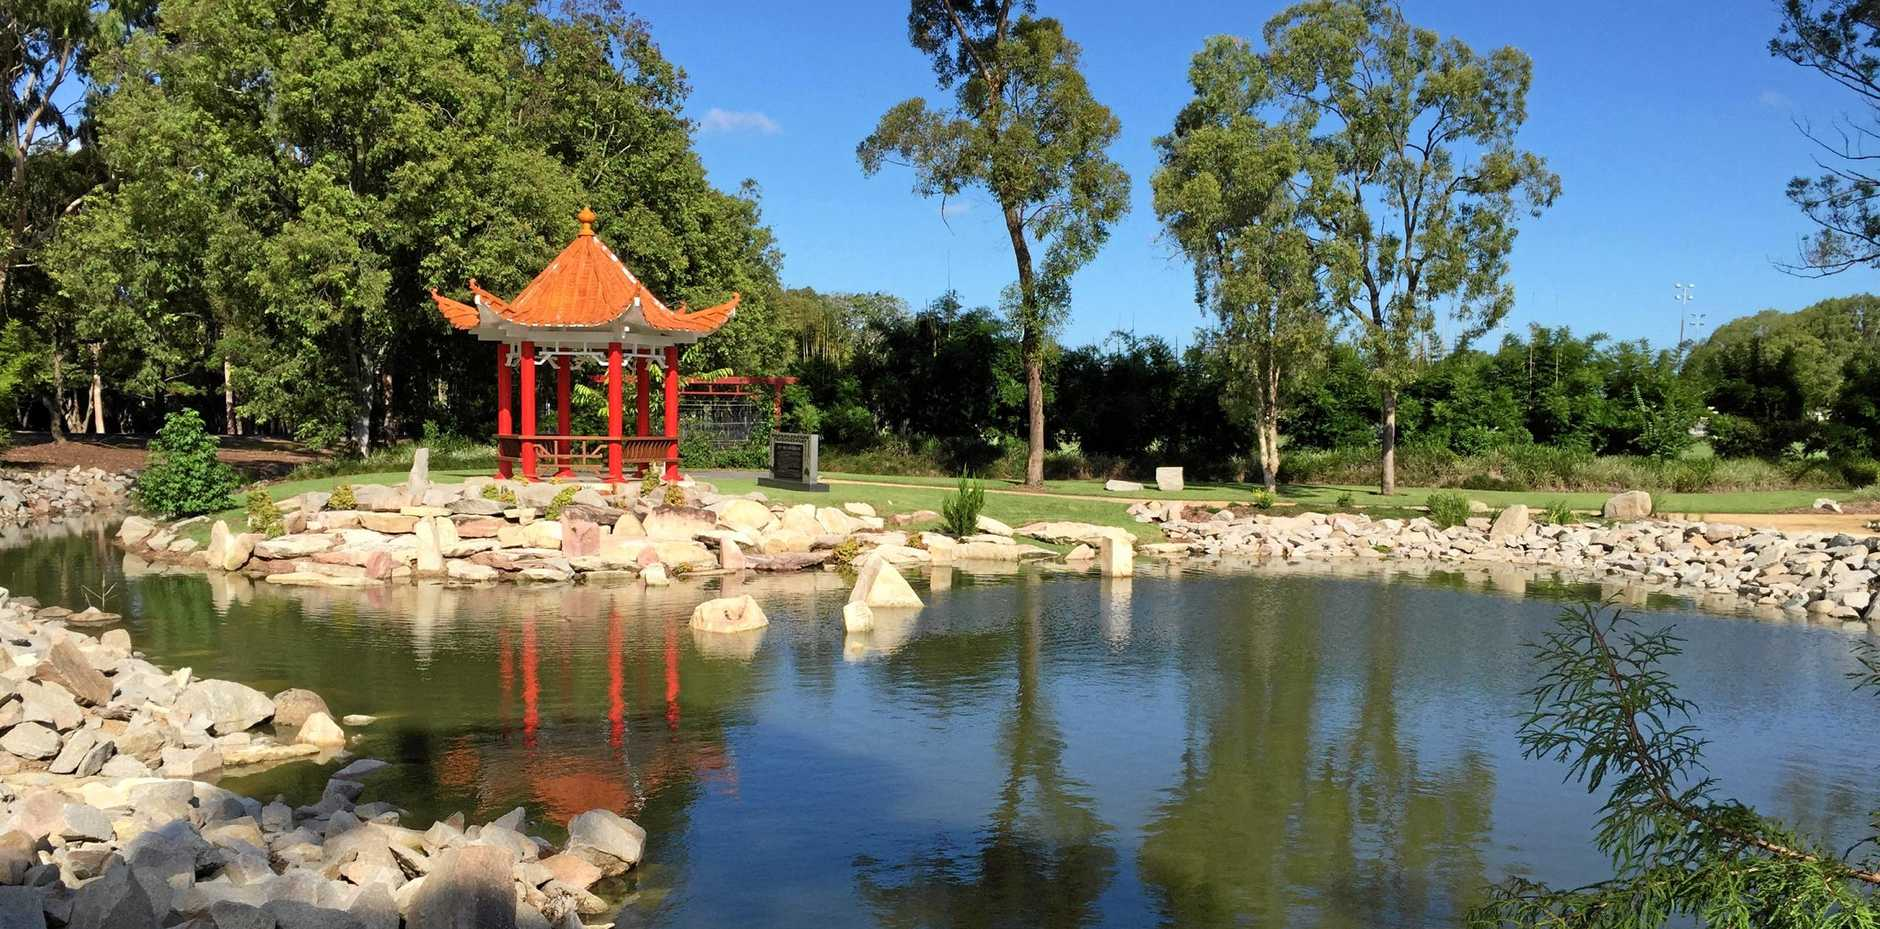 SPECIAL EVENT: The redesigned Nanning Gardens will be officially dedicated on Saturday morning.